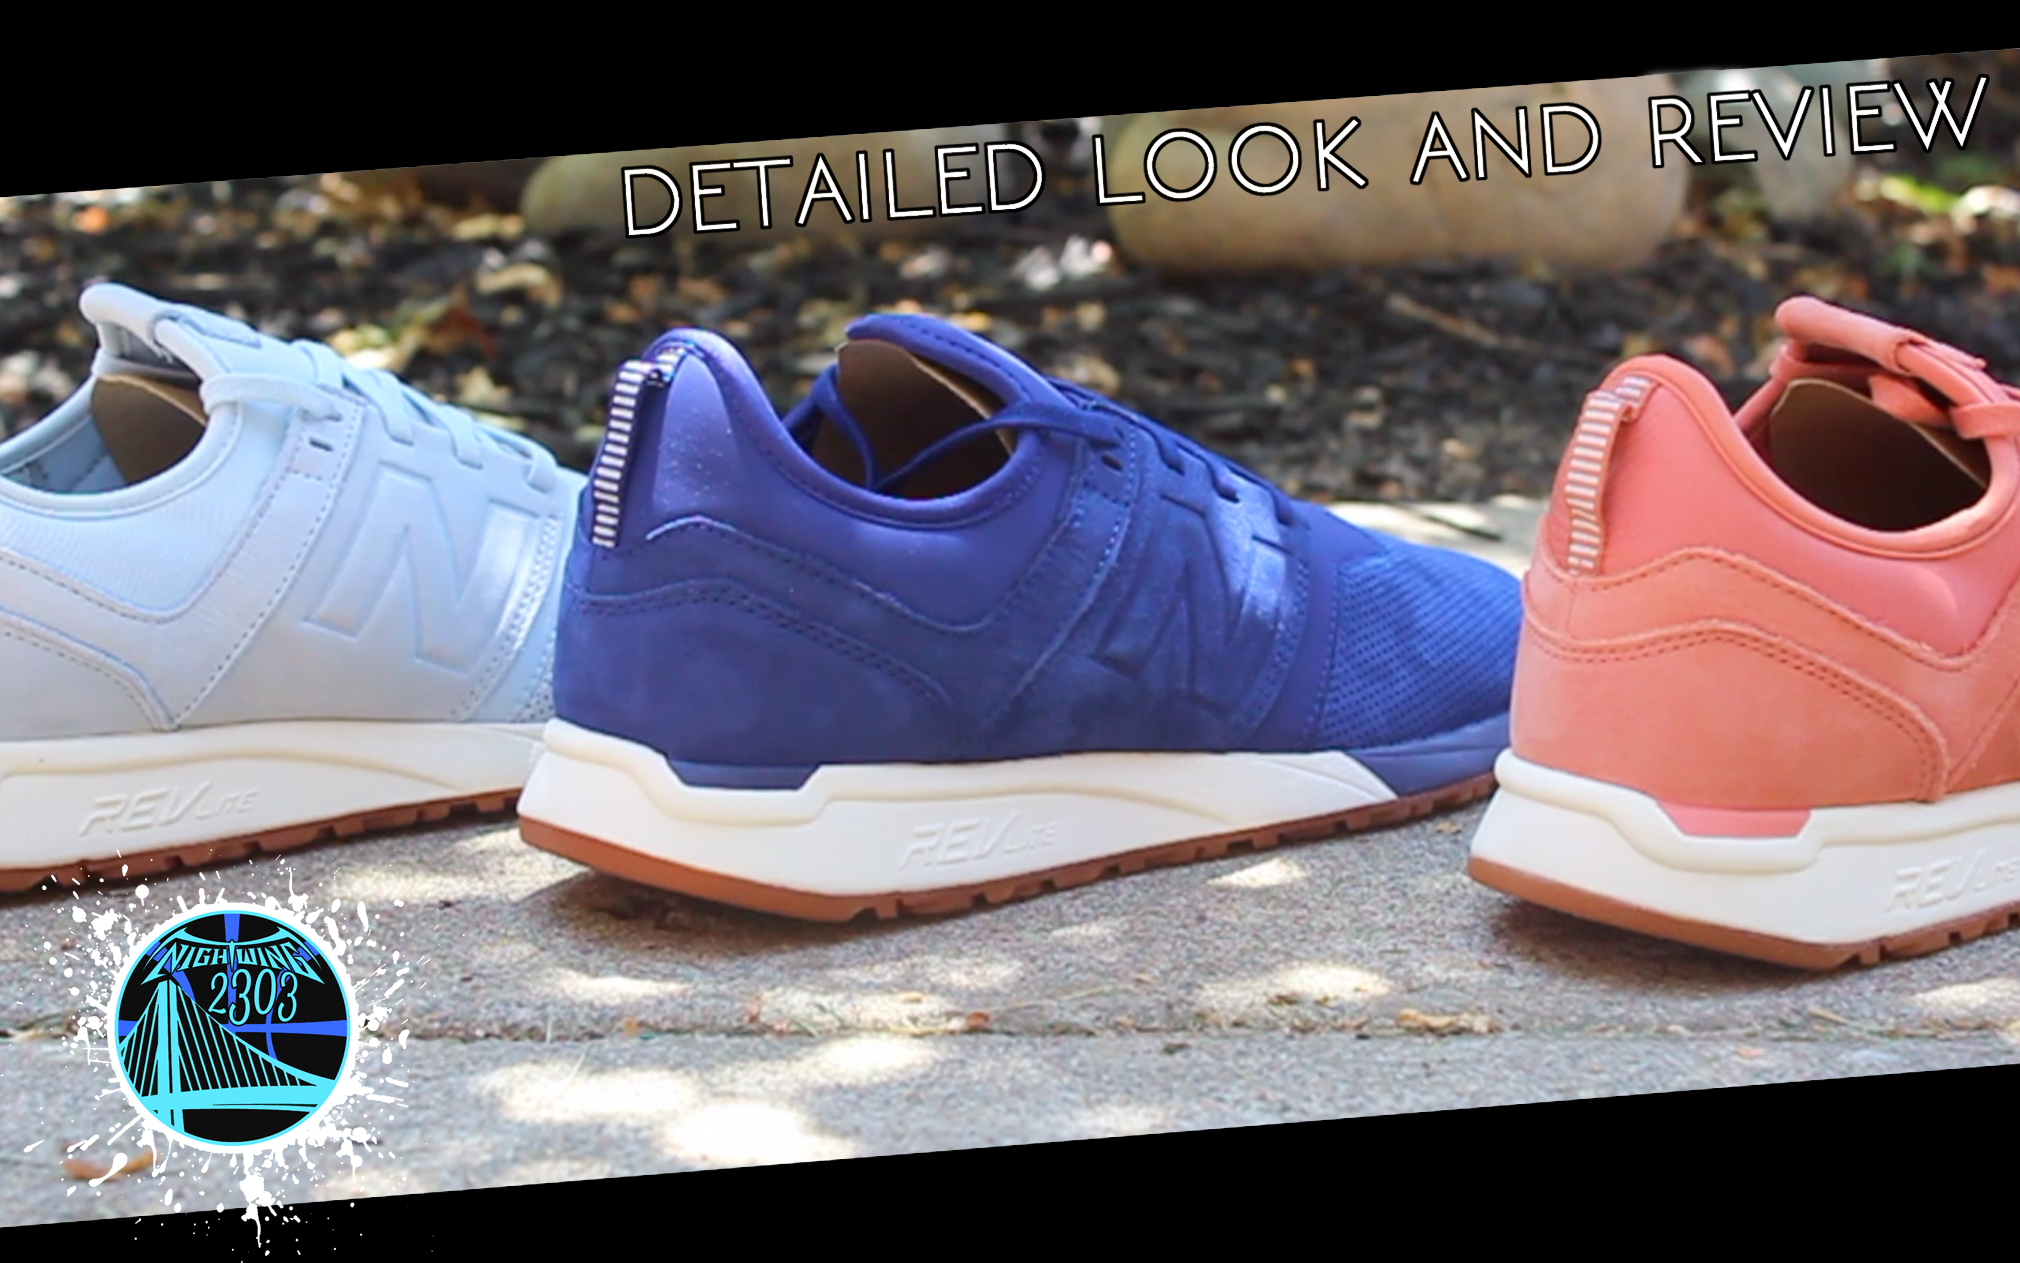 New Balance 247 Lux 'Dawn till Dusk' Pack | Detailed Look and Review